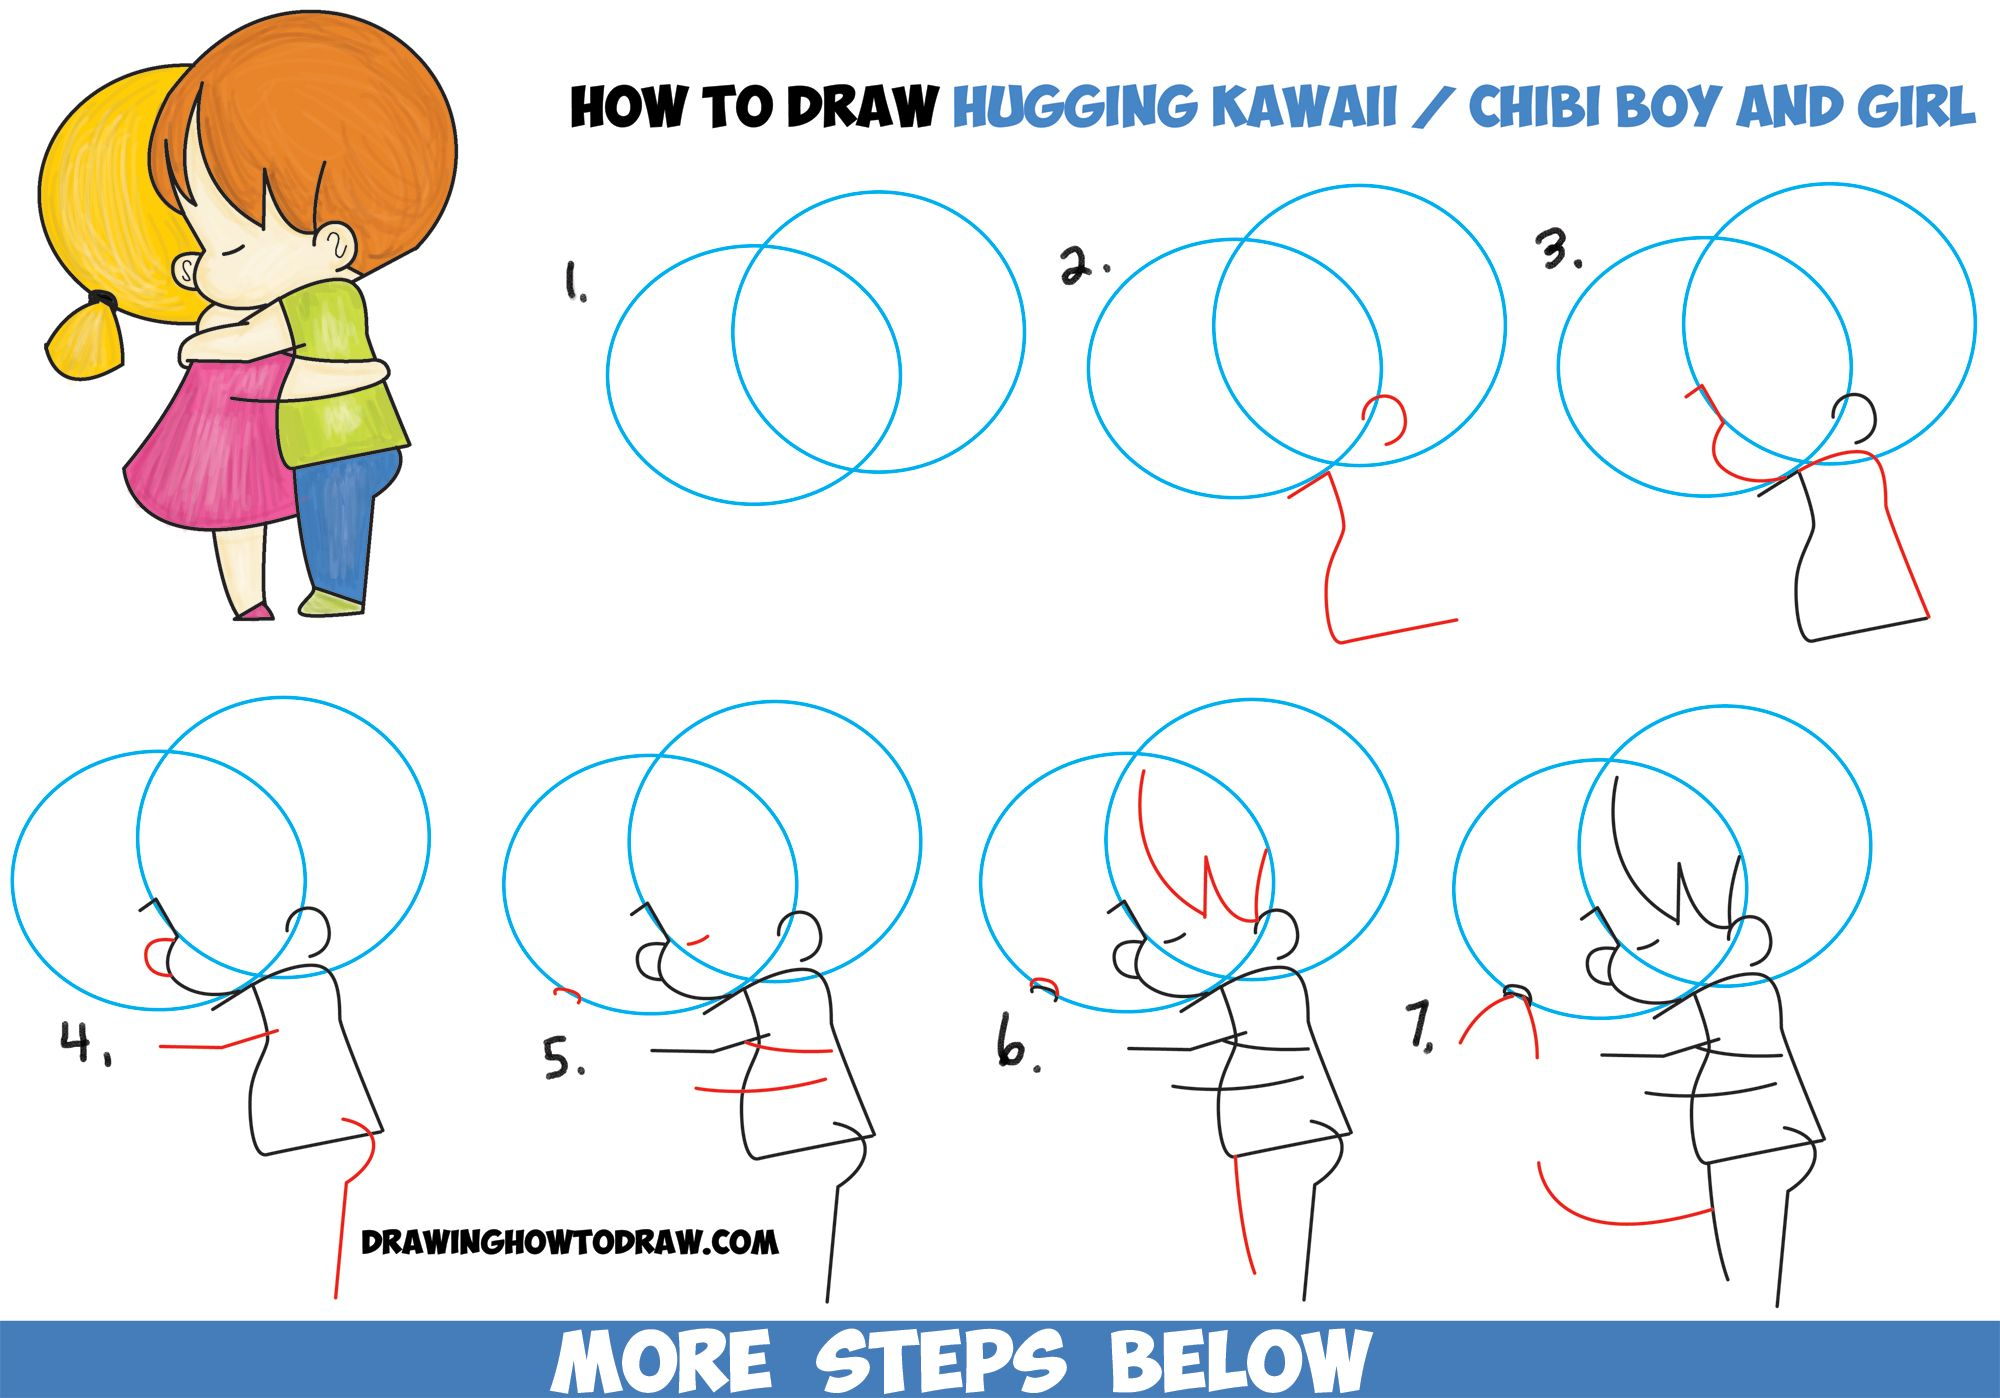 How To Draw Chibi Girl And Boy Hugging Cute Kawaii Cartoon Children Hugging In Easy Steps How To Draw Step By Step Drawing Tutorials Hugging Drawing Chibi Drawings Girl Drawing